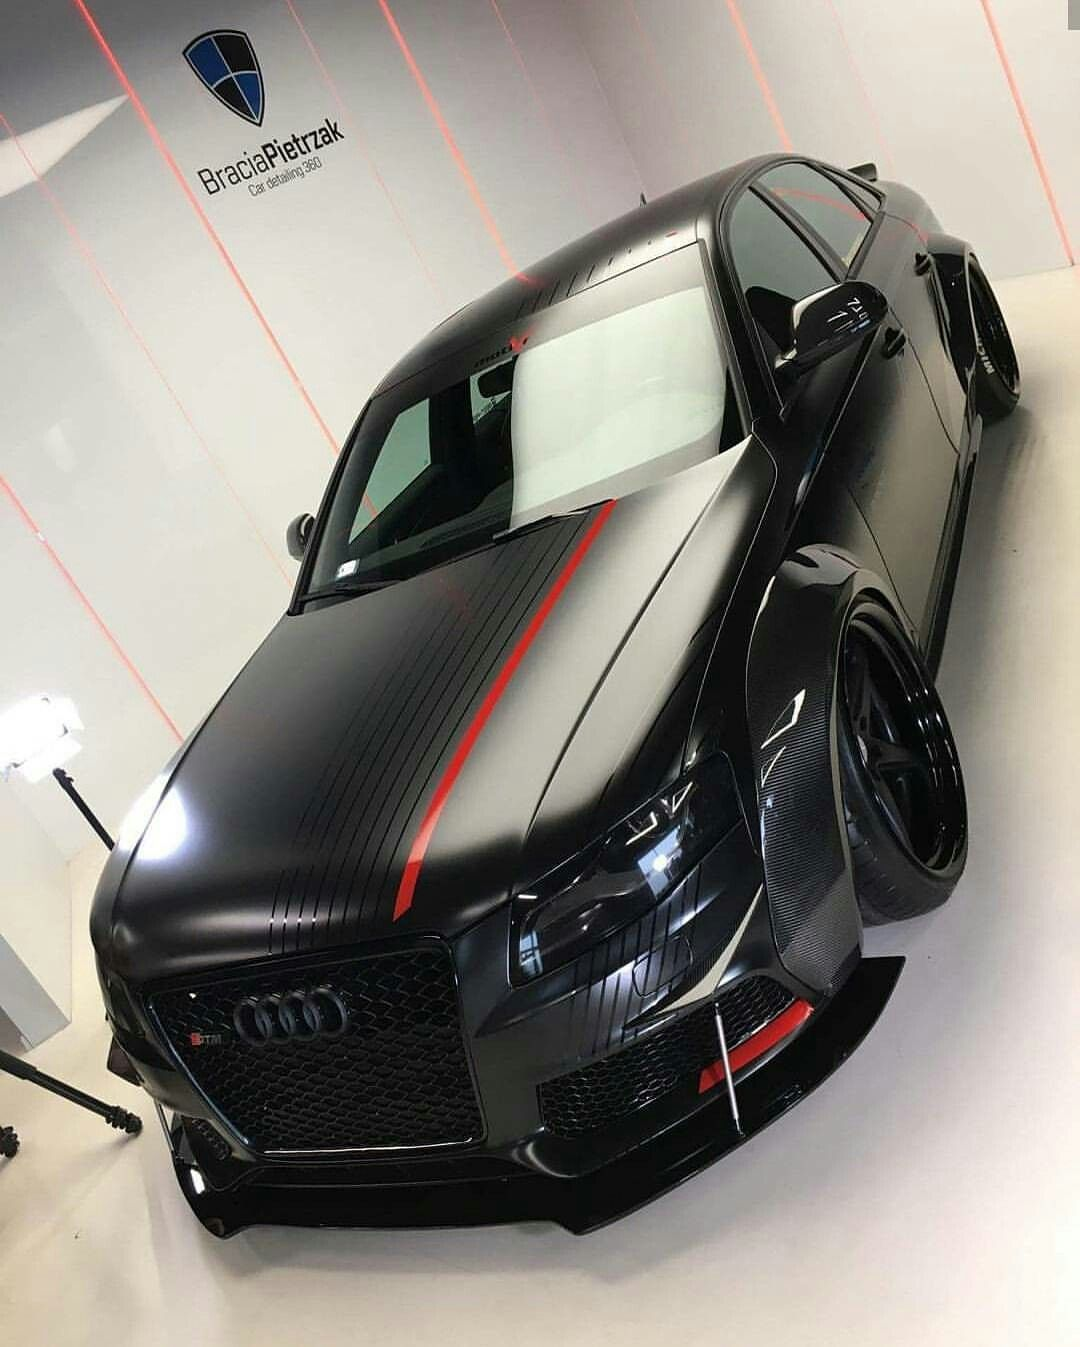 Own This Car With Onecarpayment Com Your Auto Loan Insurance And Maintenance Payments In One Payment Every Month Why Pay Amazing Cars Audi Cars Car Stripes